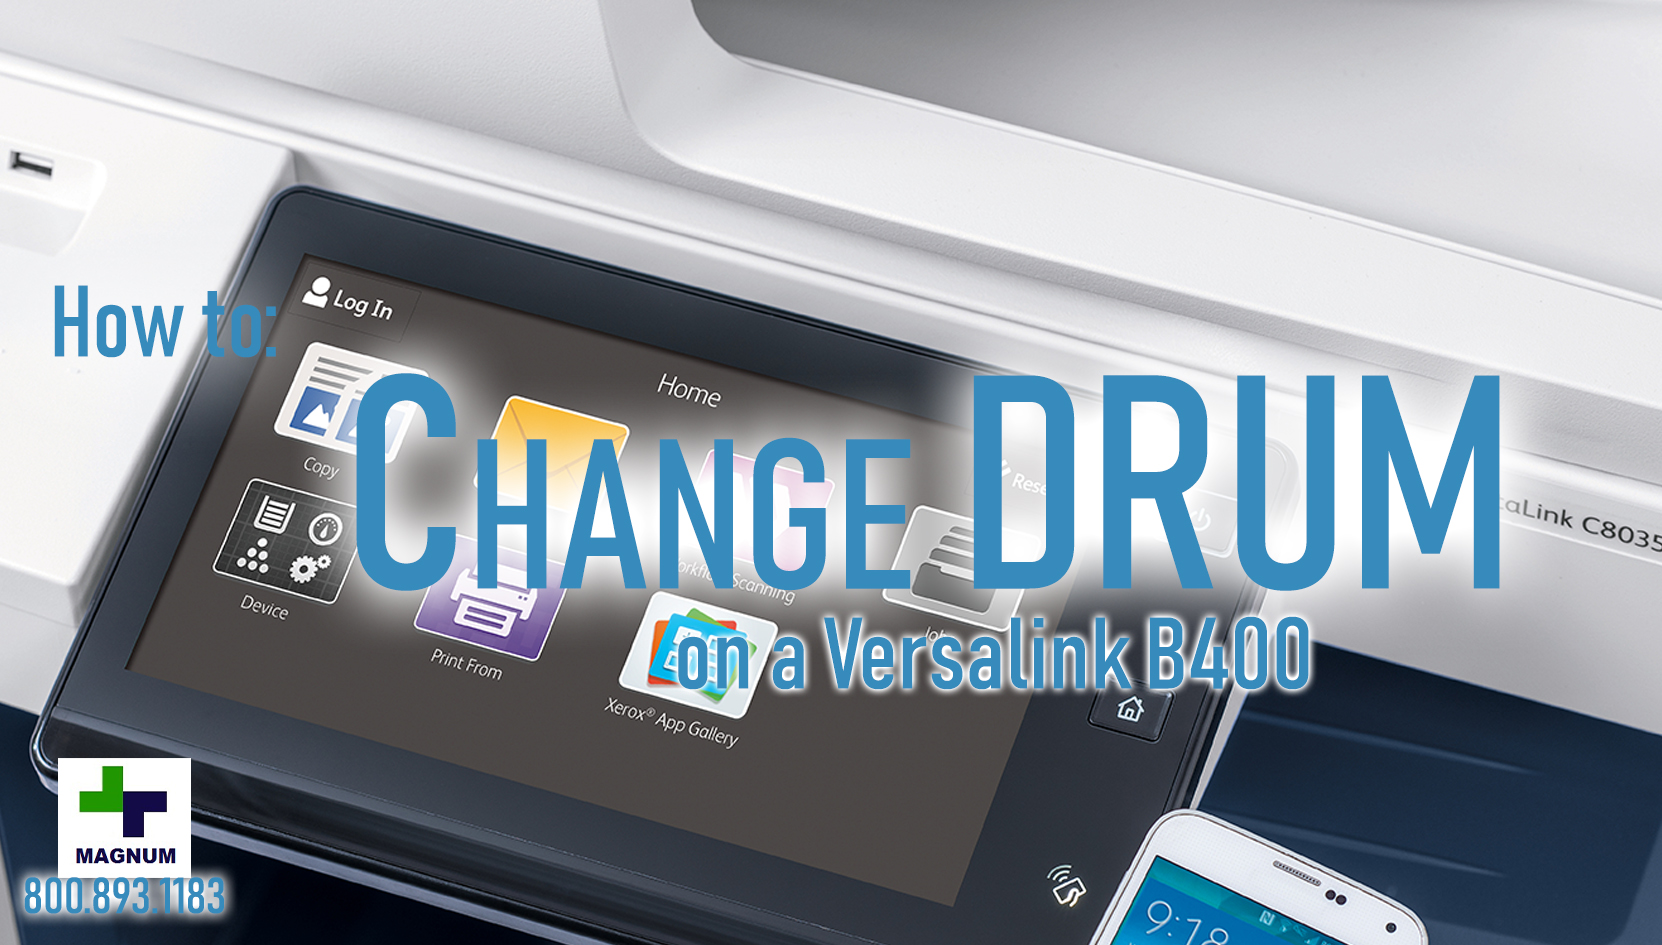 How To: Versalink B400 – Change Drum